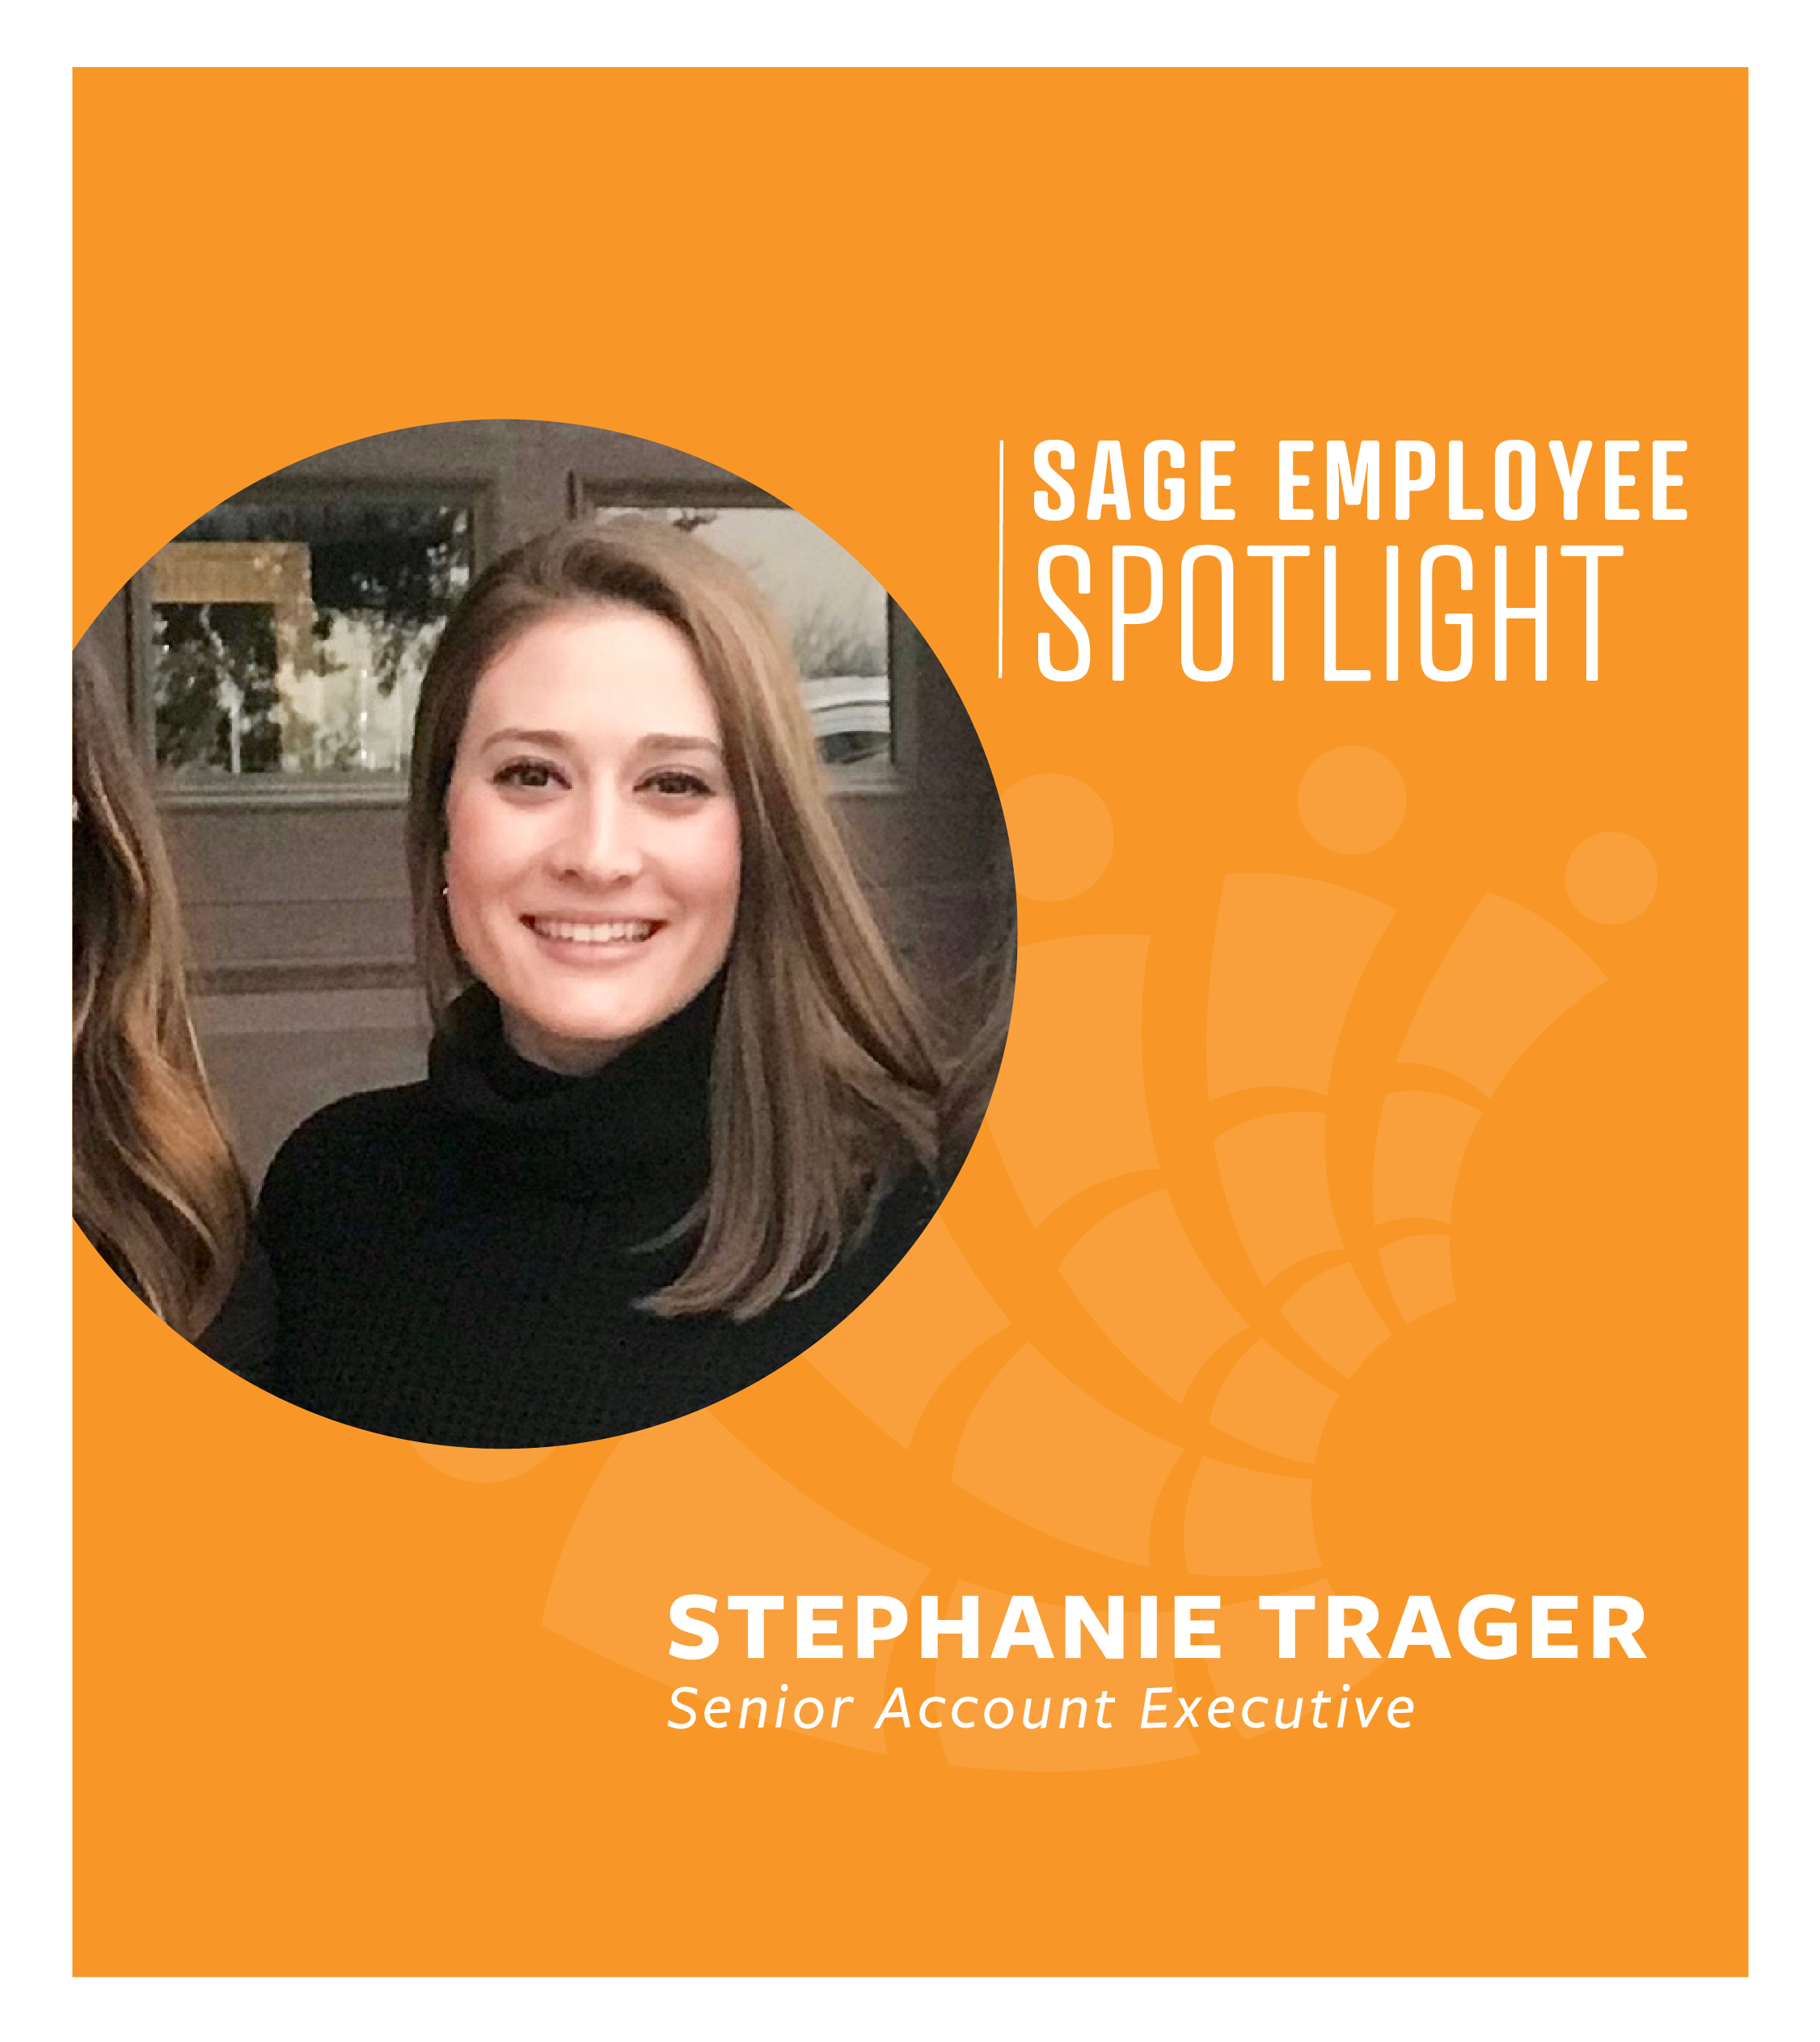 SAGE-employee spotlight-Steph-02.jpg